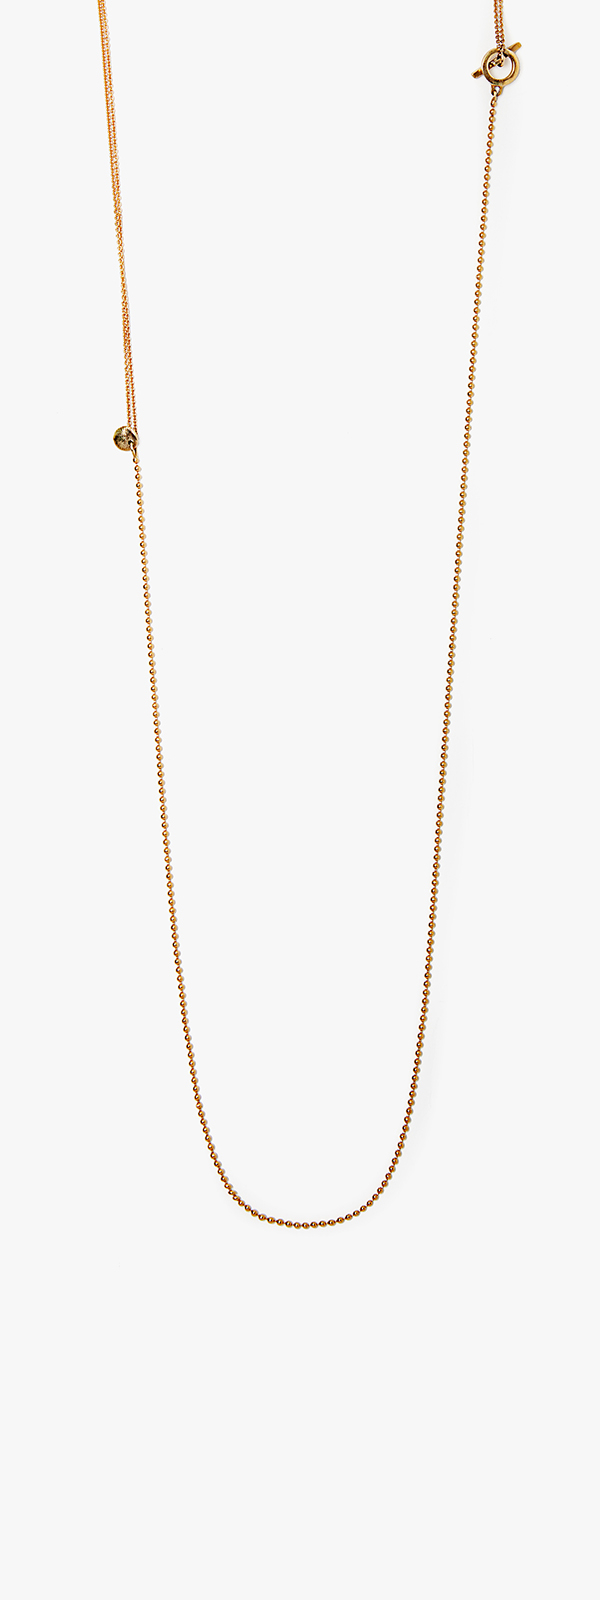 Image of 18k Gold Ball Chain Necklace